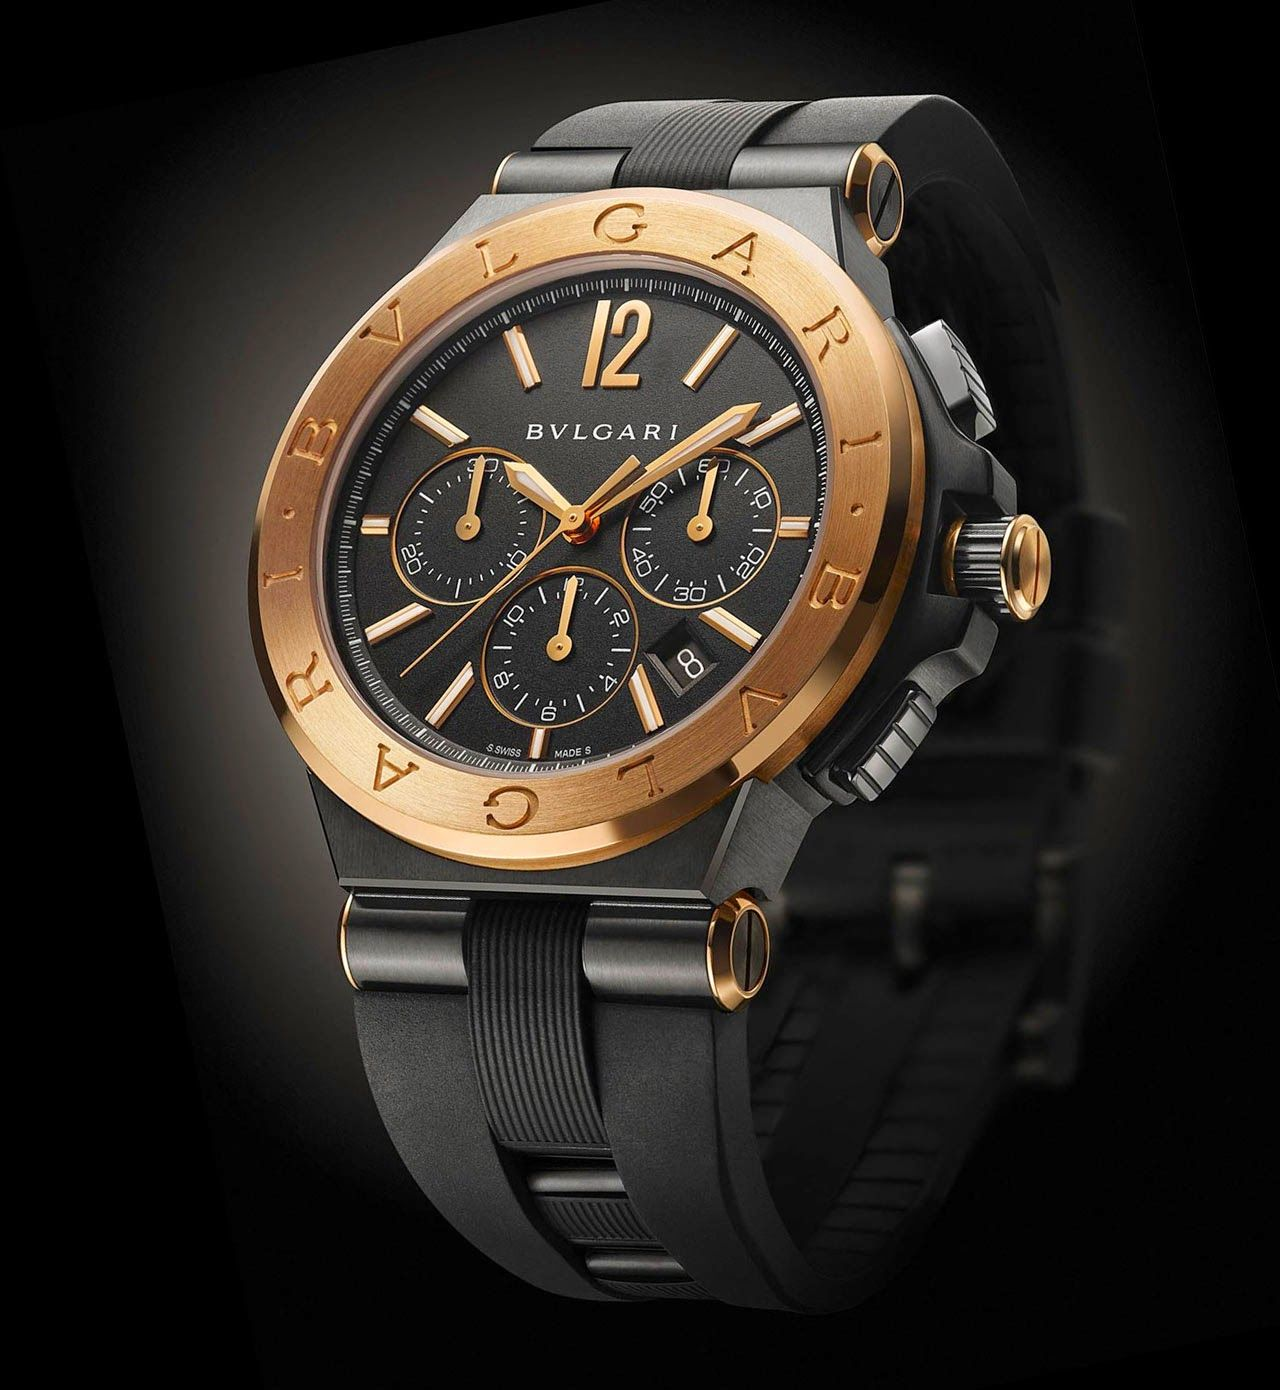 ed5ba1eb04b Bulgari - Diagono Ultranero Chronograph